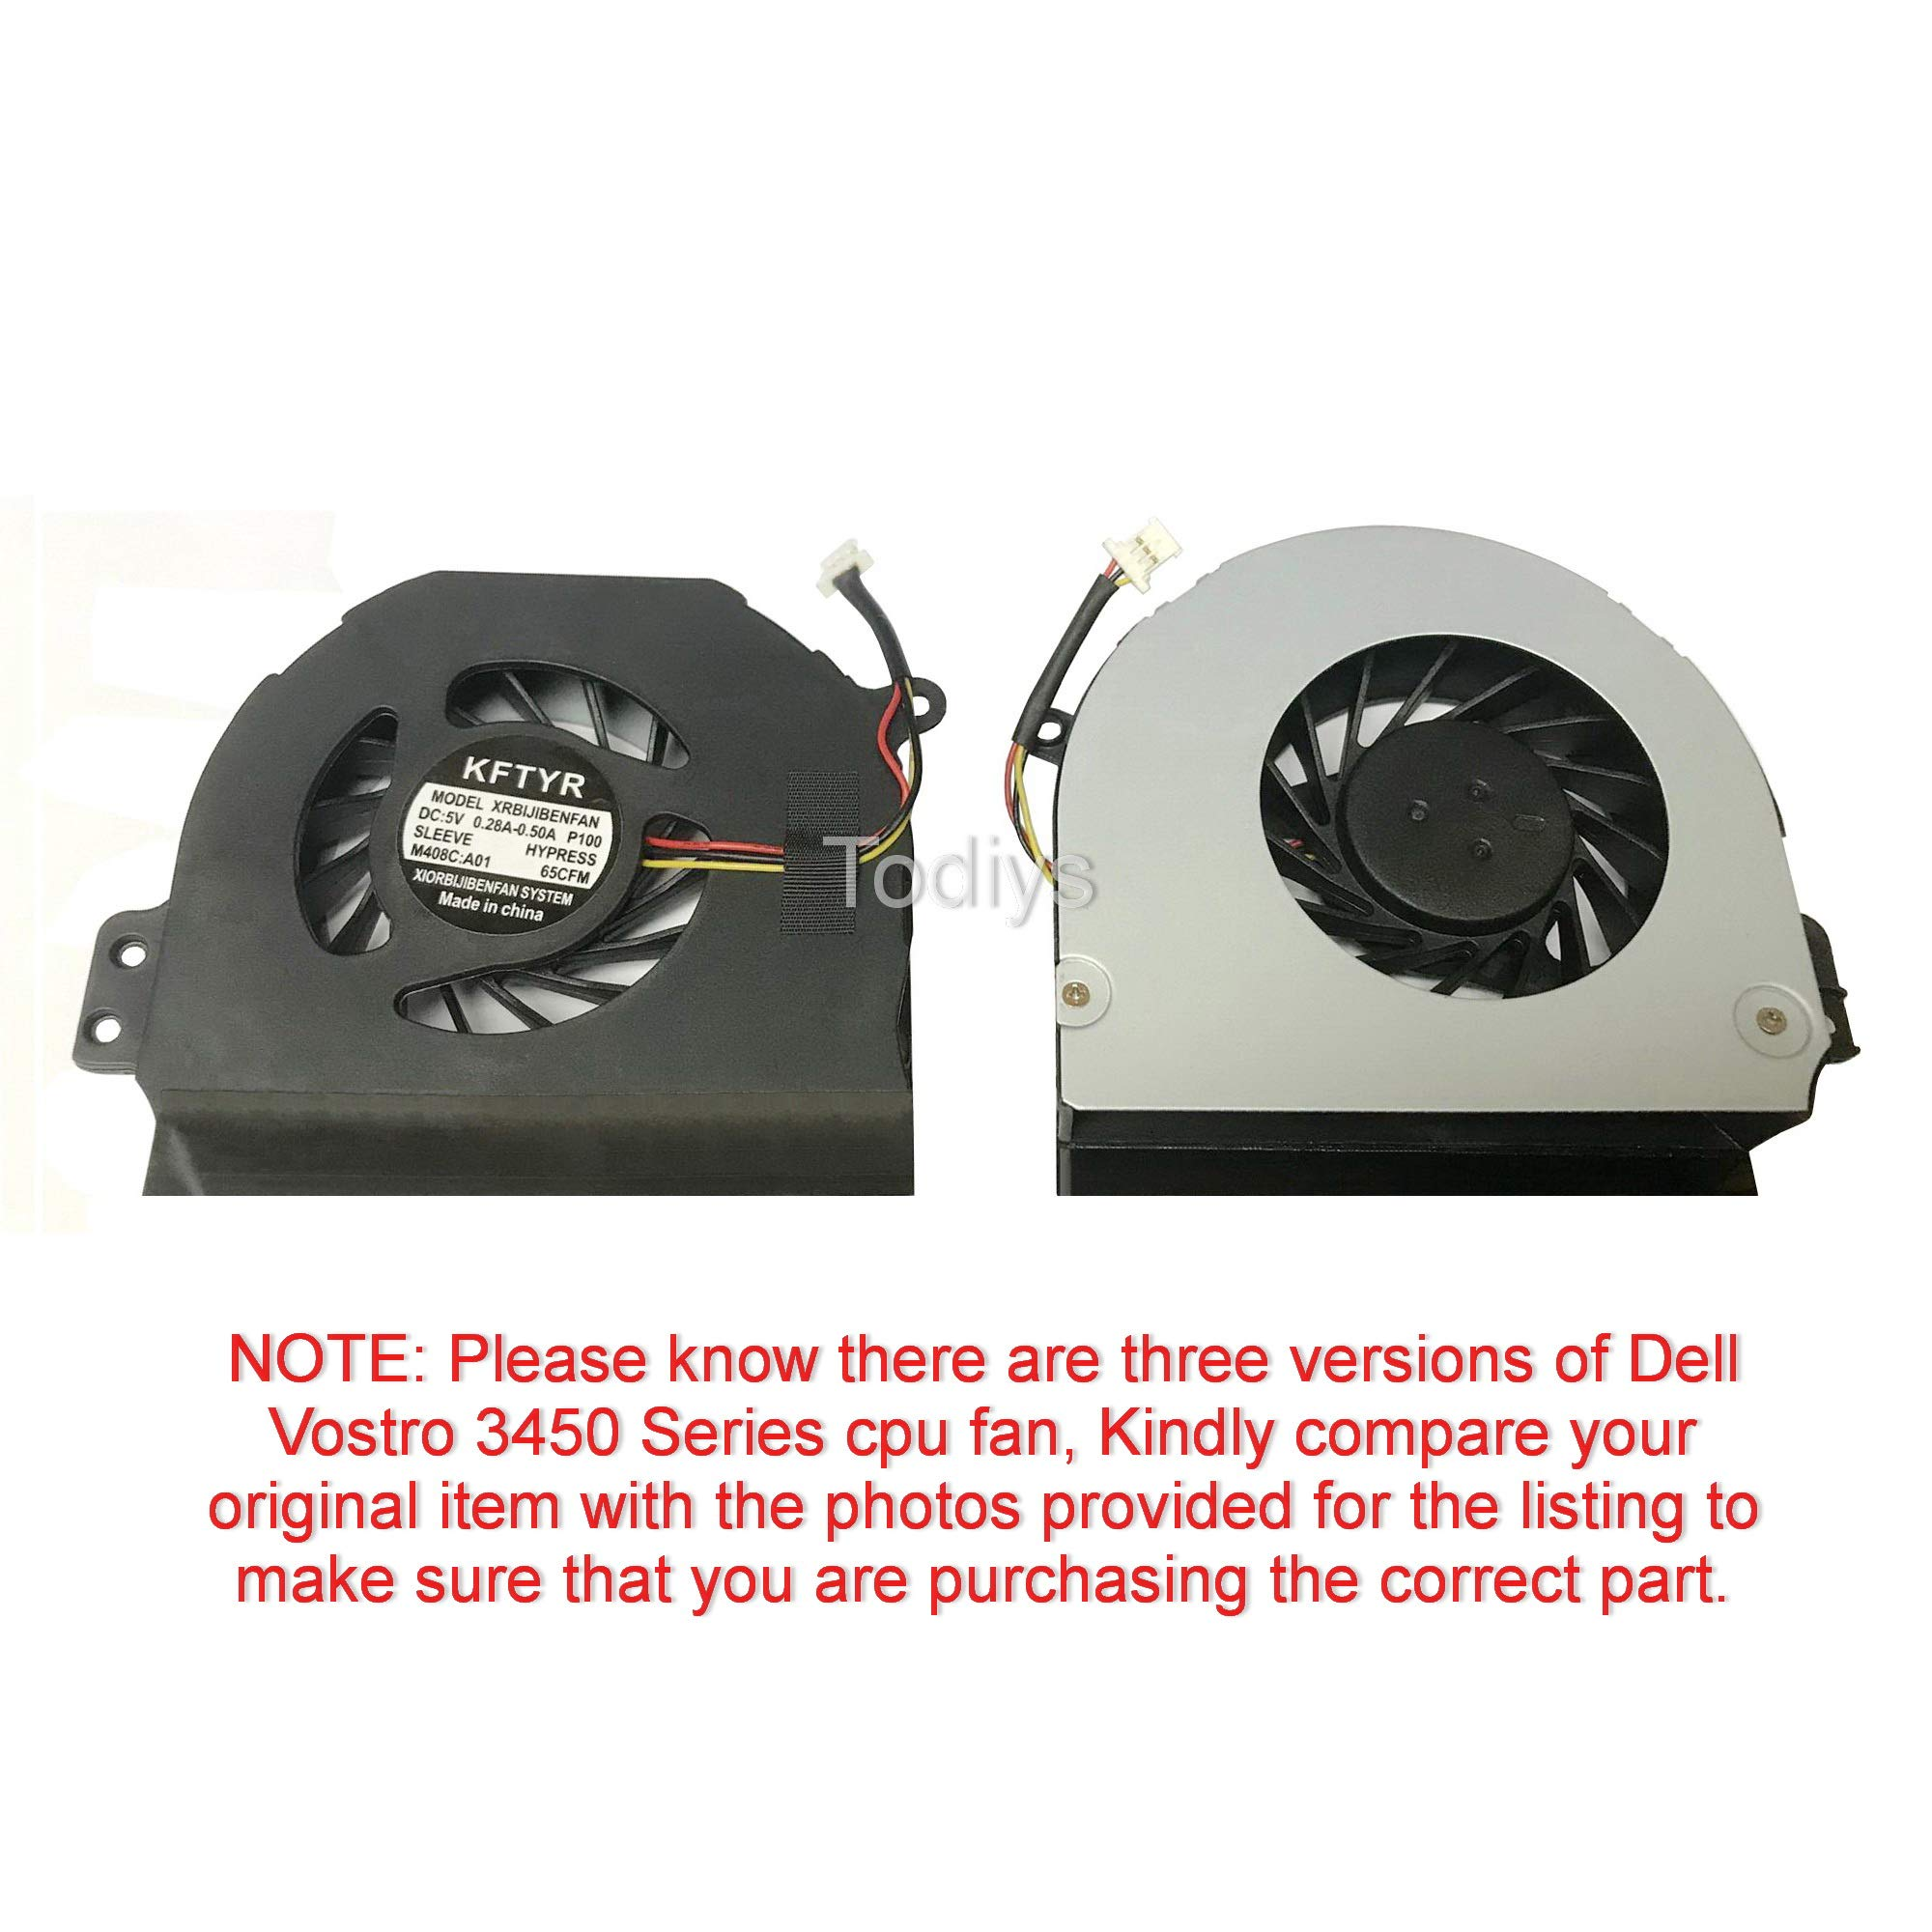 wangpeng Laptop CPU Cooling Fan Cooler for Dell Inspiron 1464 1564 1764 14R N4010 Series